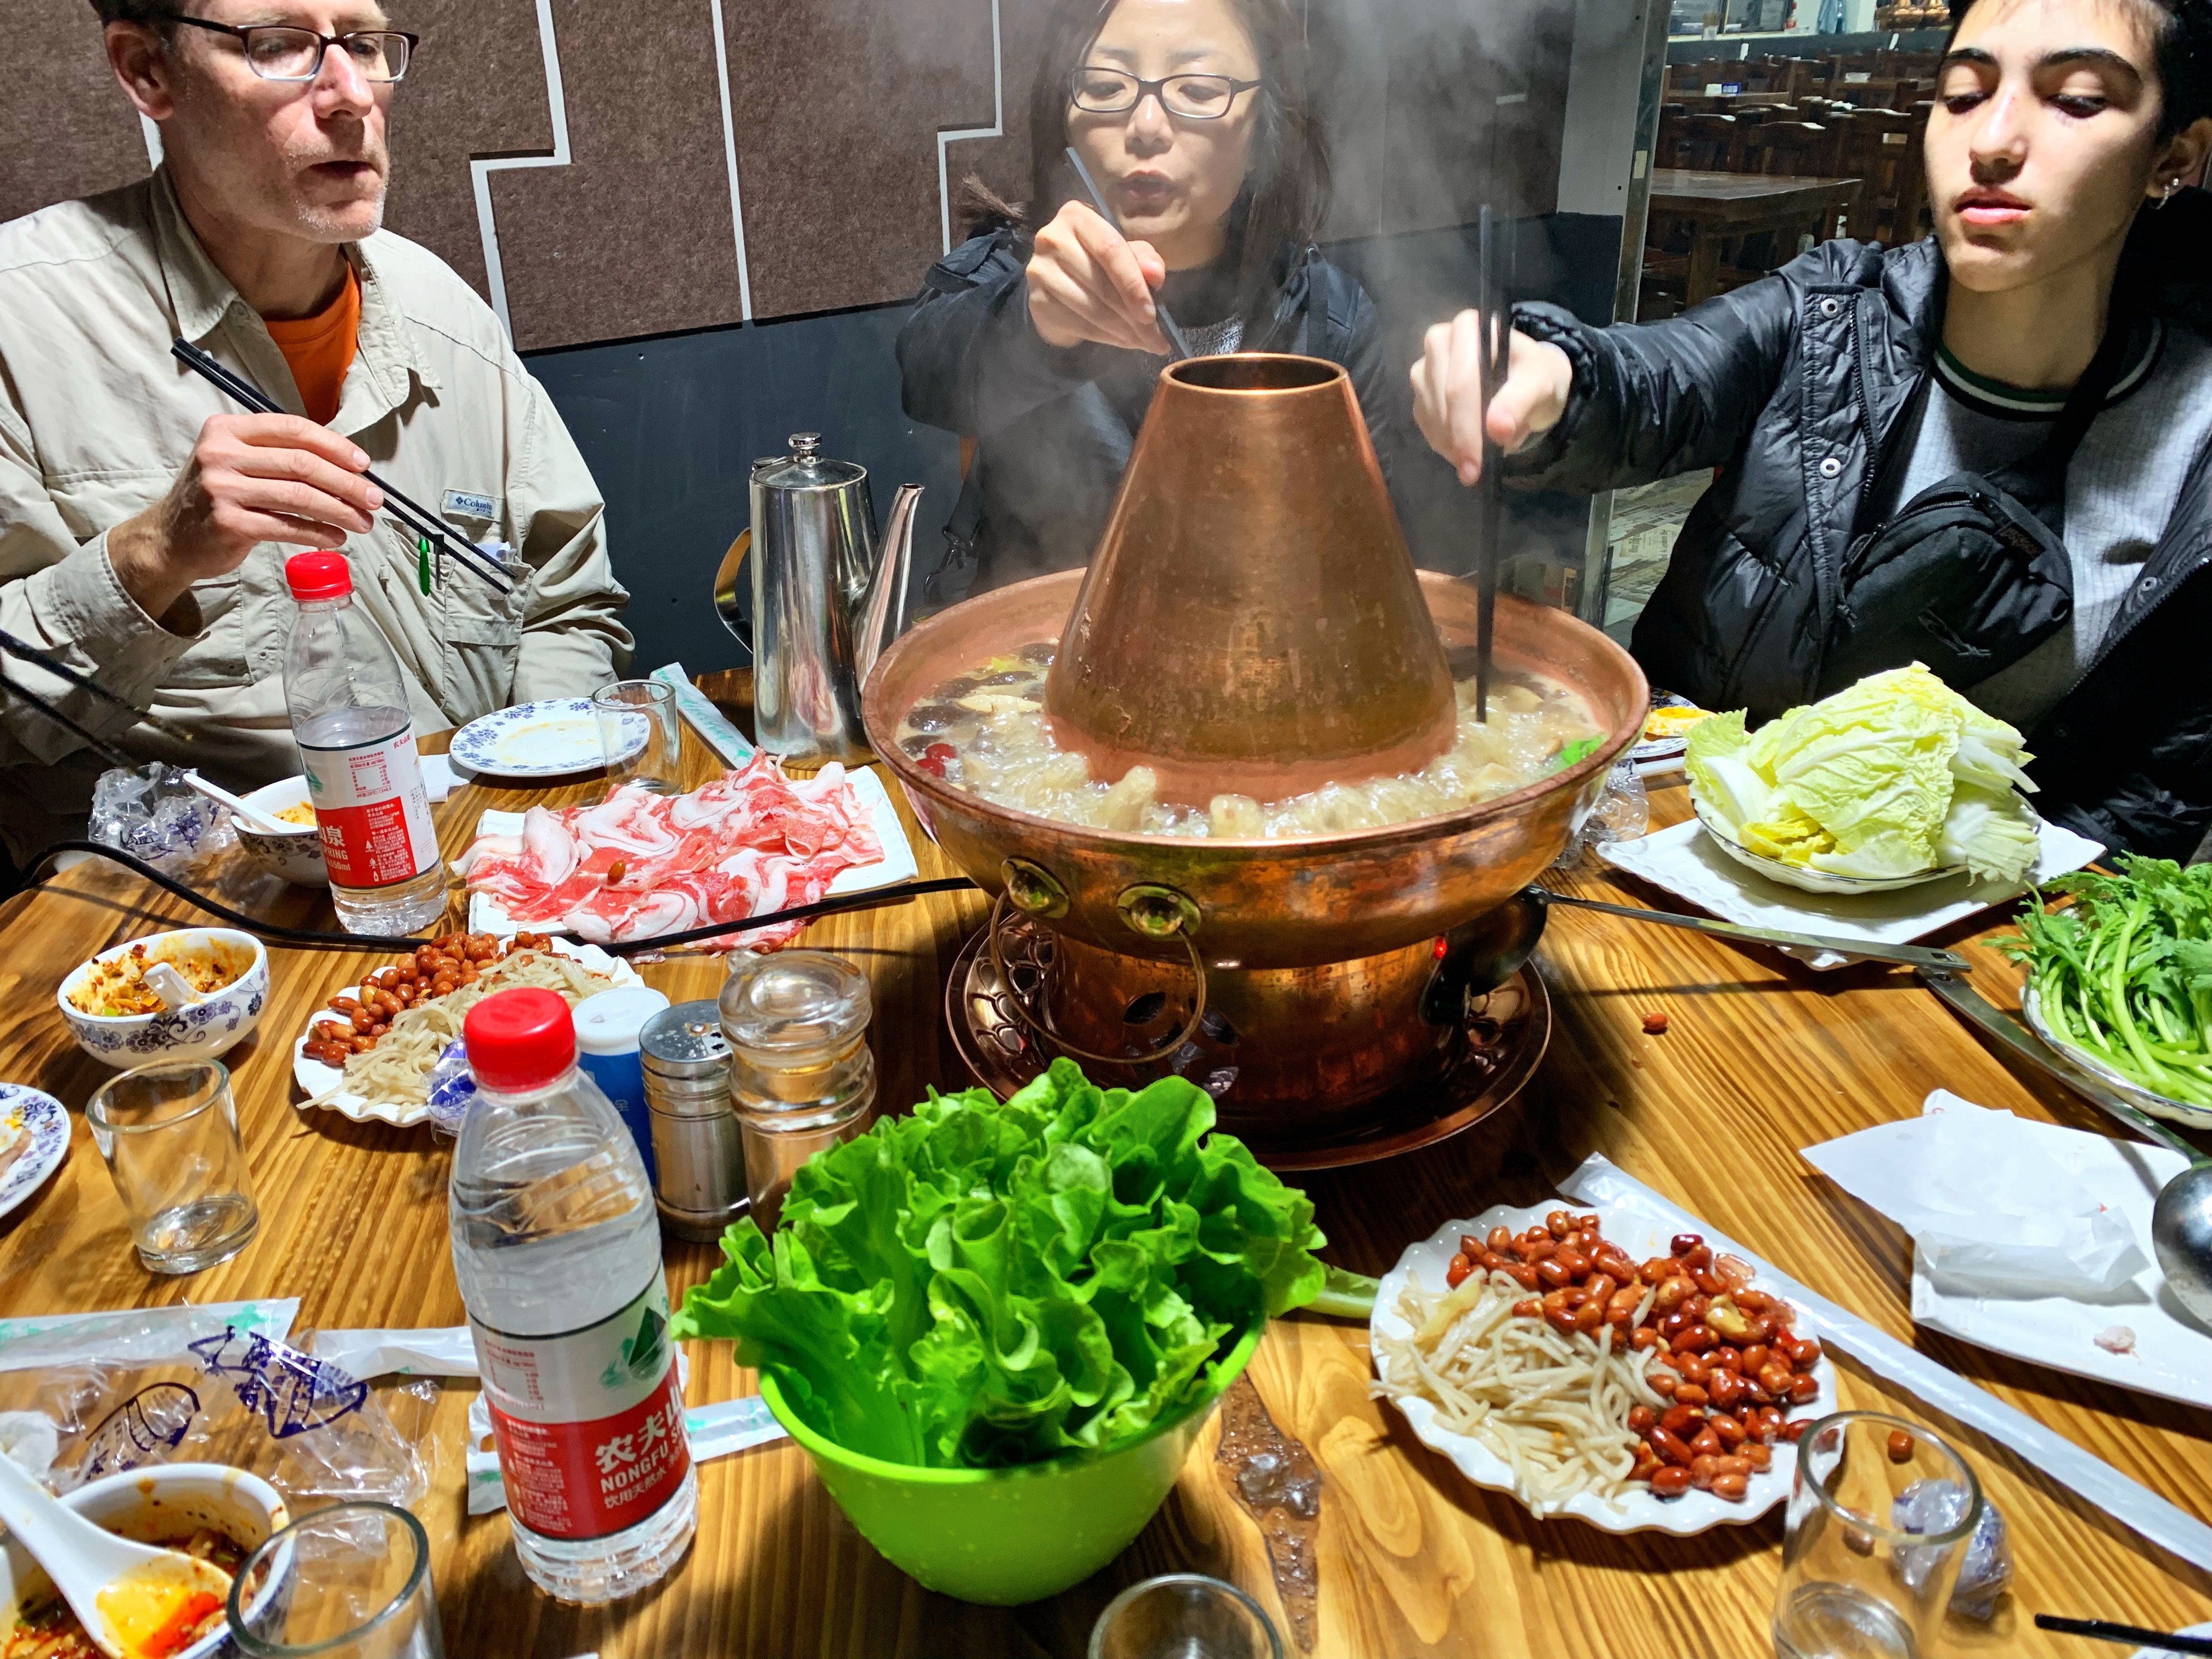 Image of students and chaperones sharing hot pot in Luoyang.